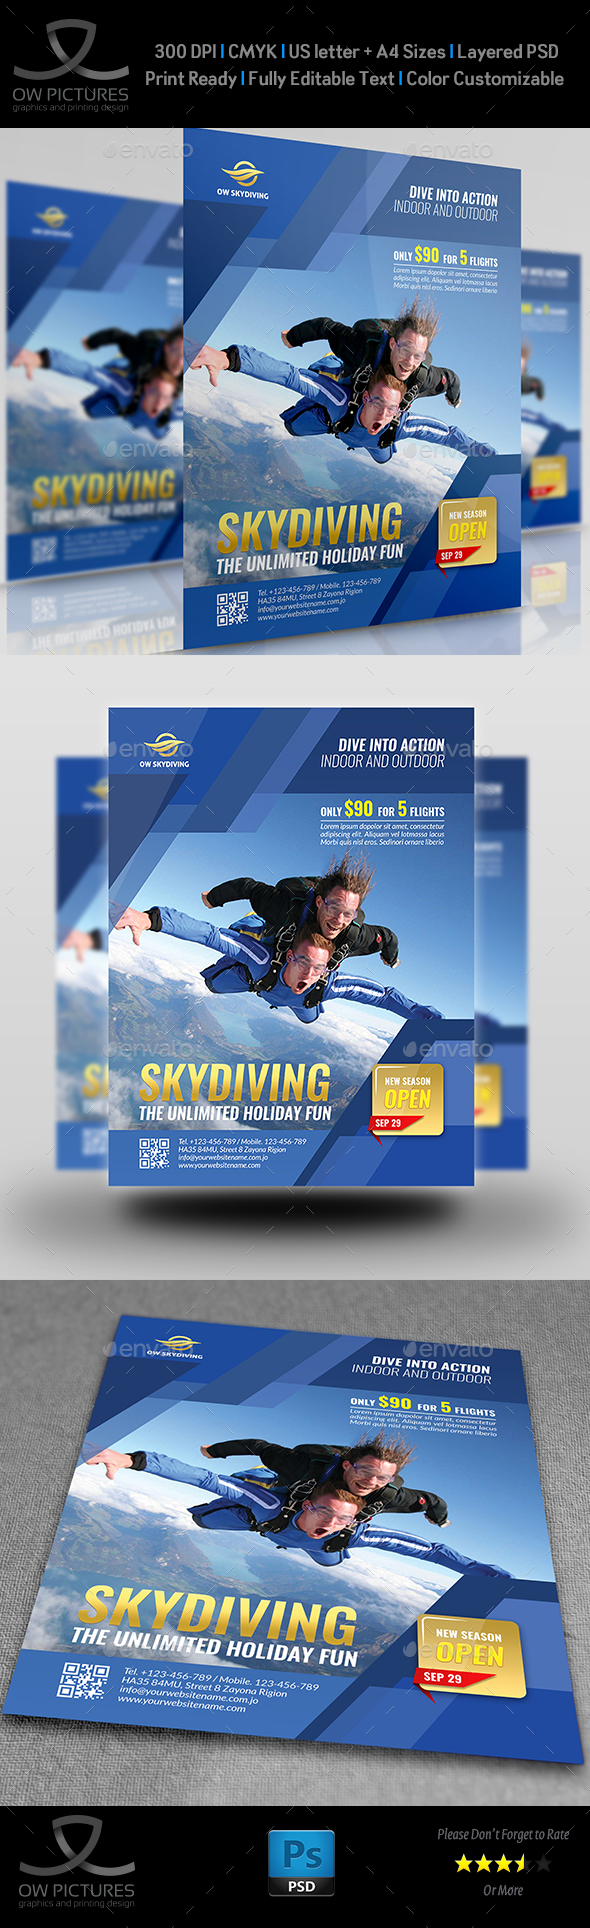 Skydiving Flyer Template - Flyers Print Templates